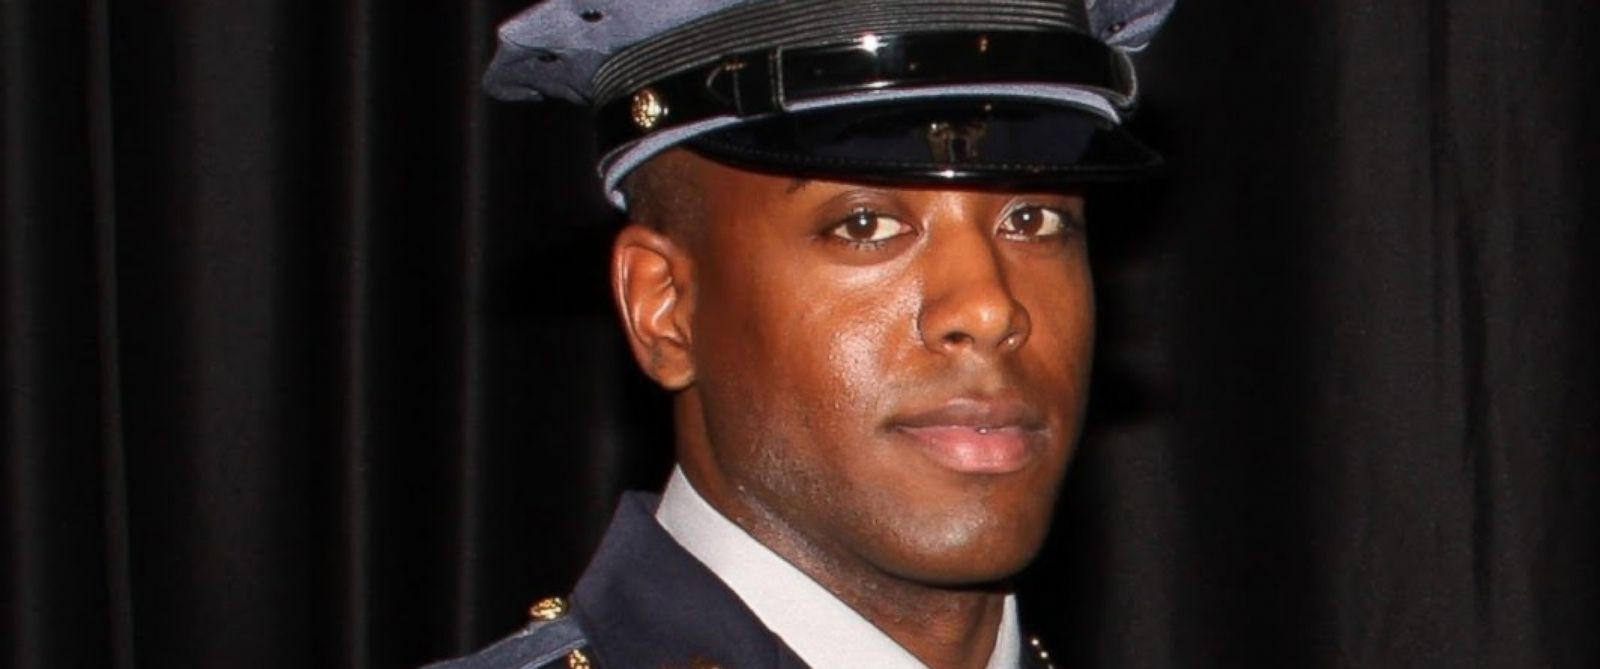 PHOTO: Prince Georges County, Maryland police officer Jacai Colson, 28, died in the line of duty March 13, 2016.